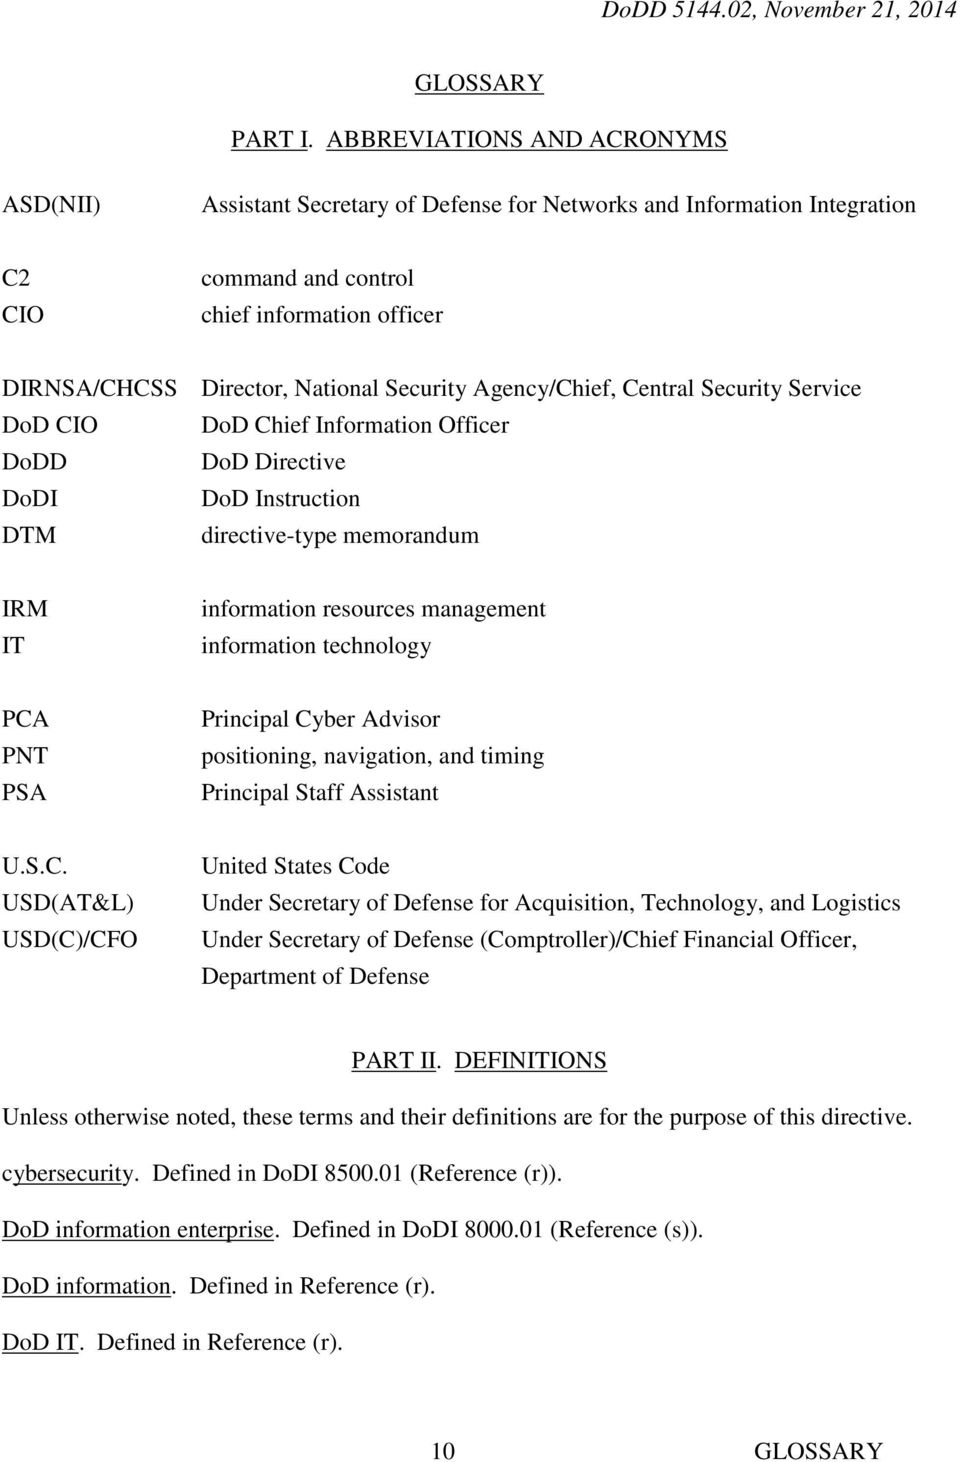 Security Agency/Chief, Central Security Service DoD CIO DoD Chief Information Officer DoDD DoD Directive DoDI DoD Instruction DTM directive-type memorandum IRM IT information resources management